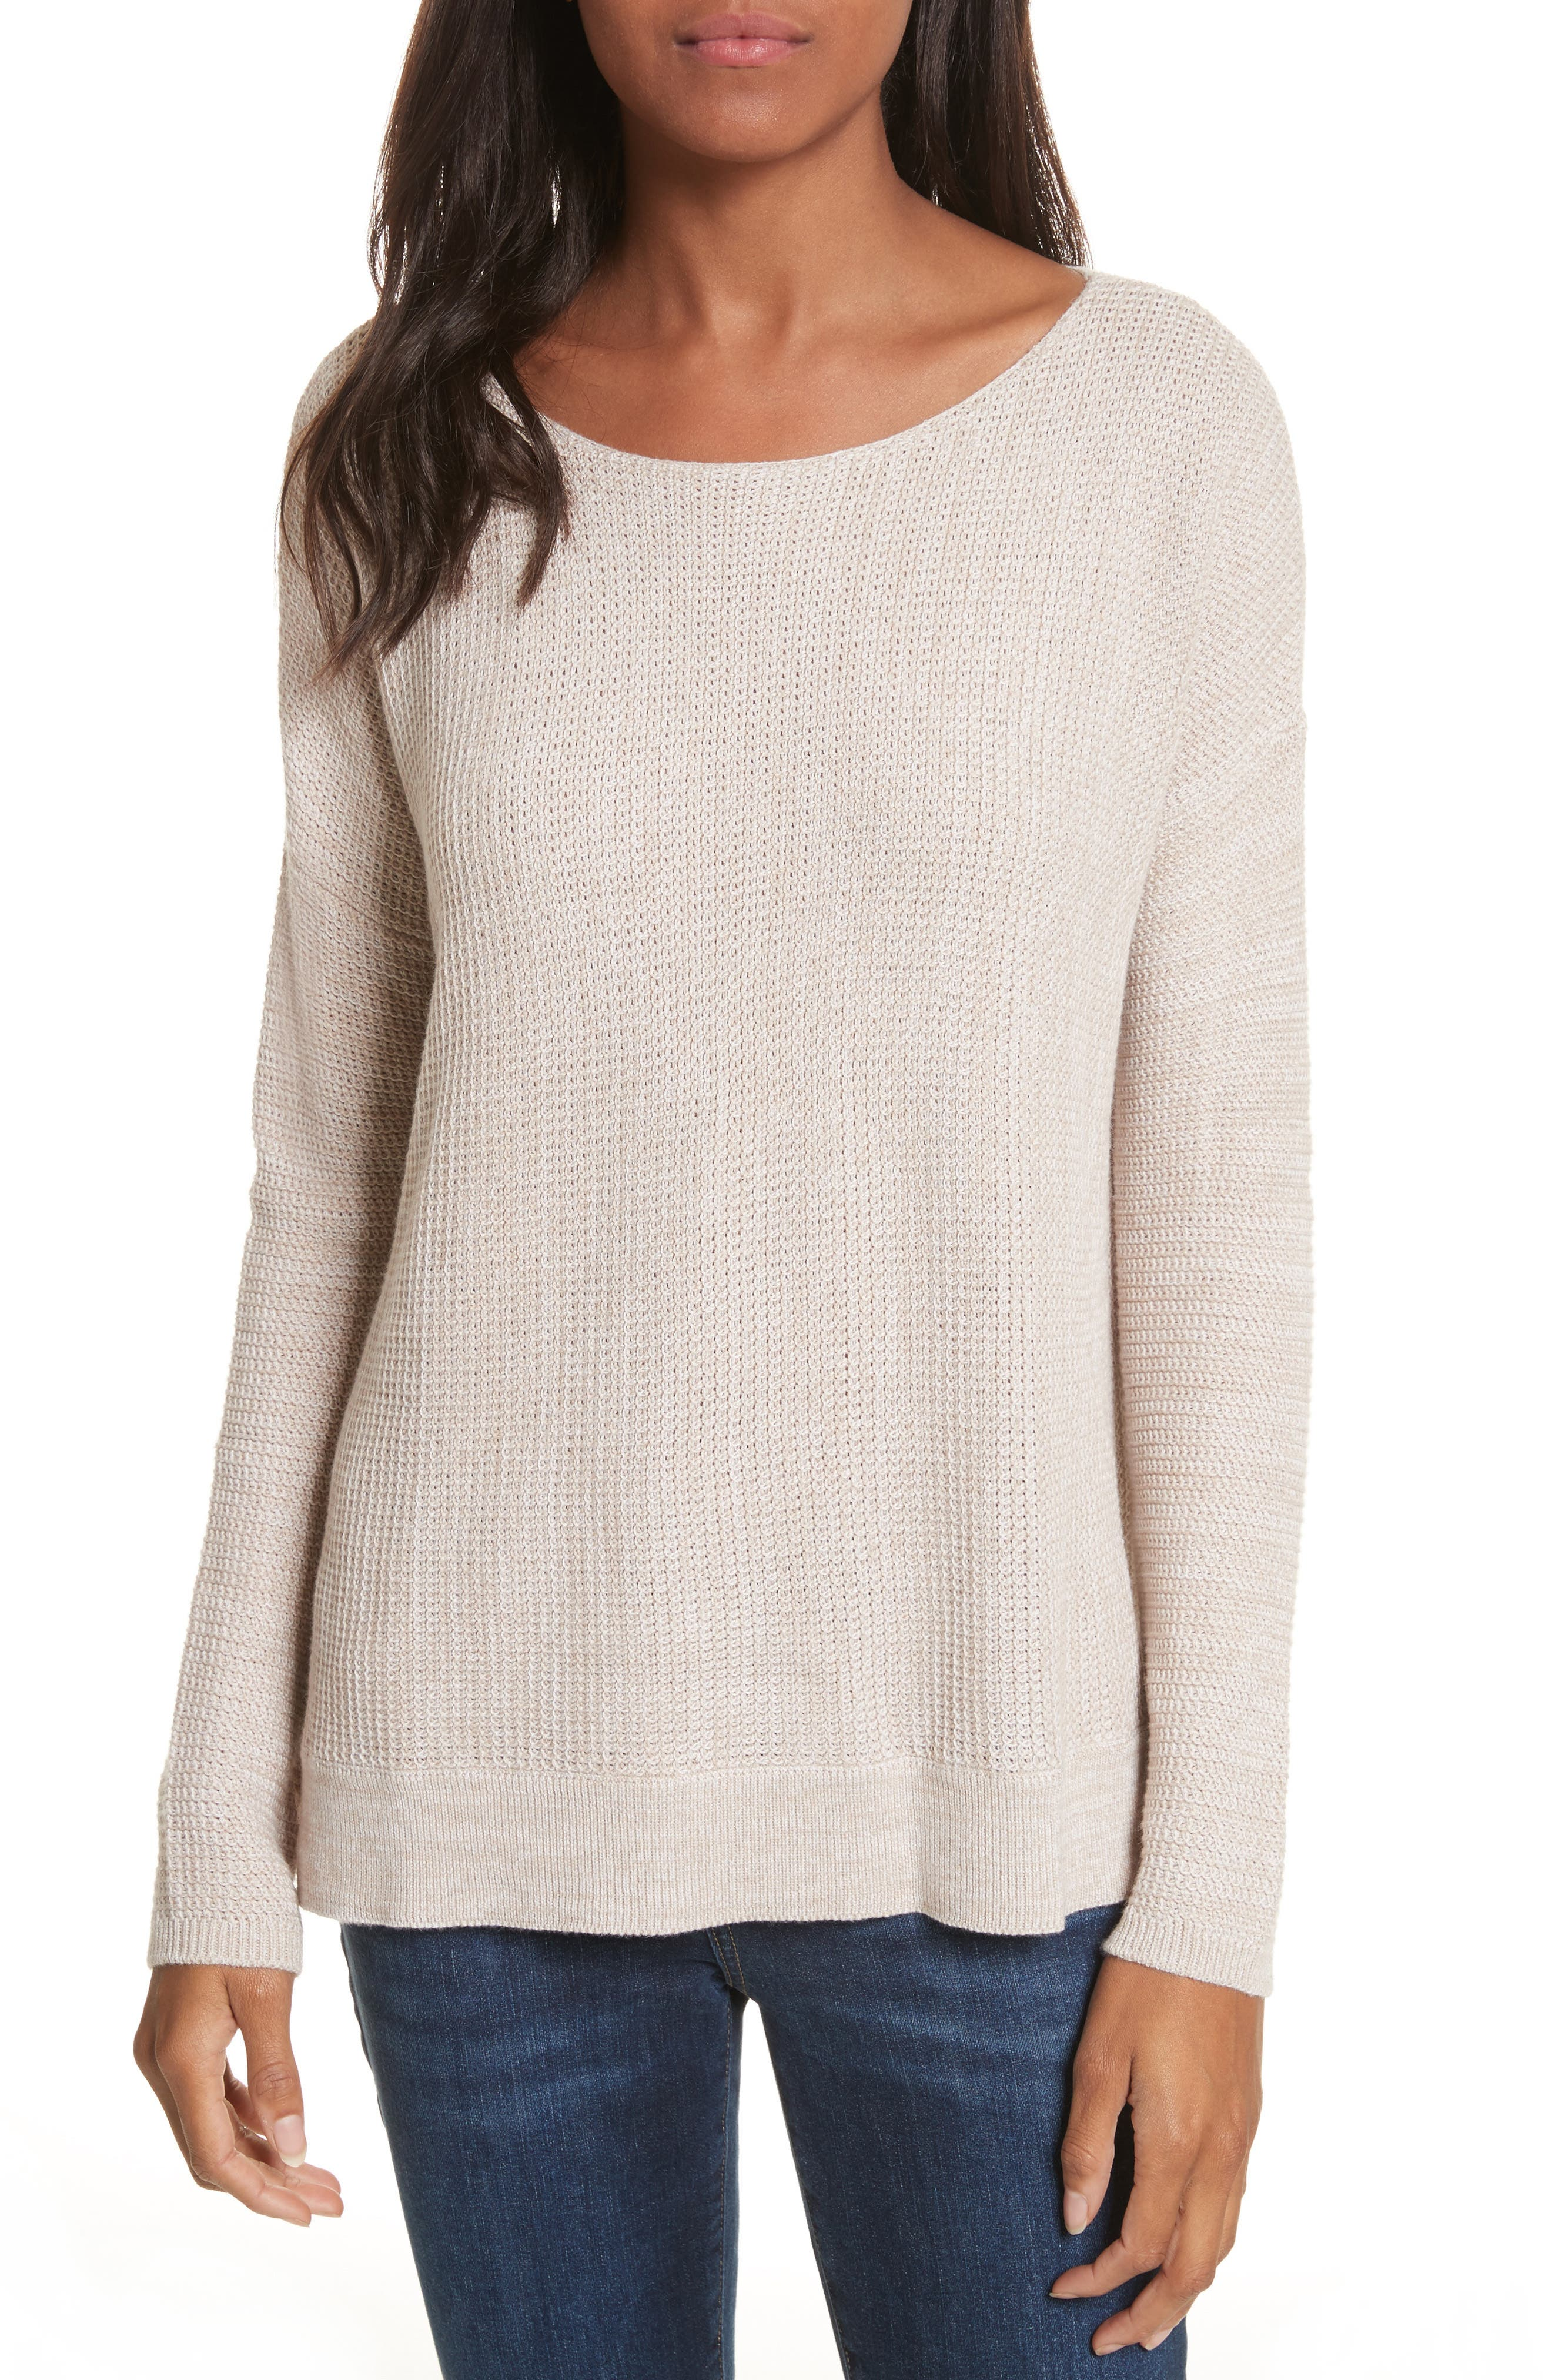 Soft Joie Kashani Pullover,                         Main,                         color,